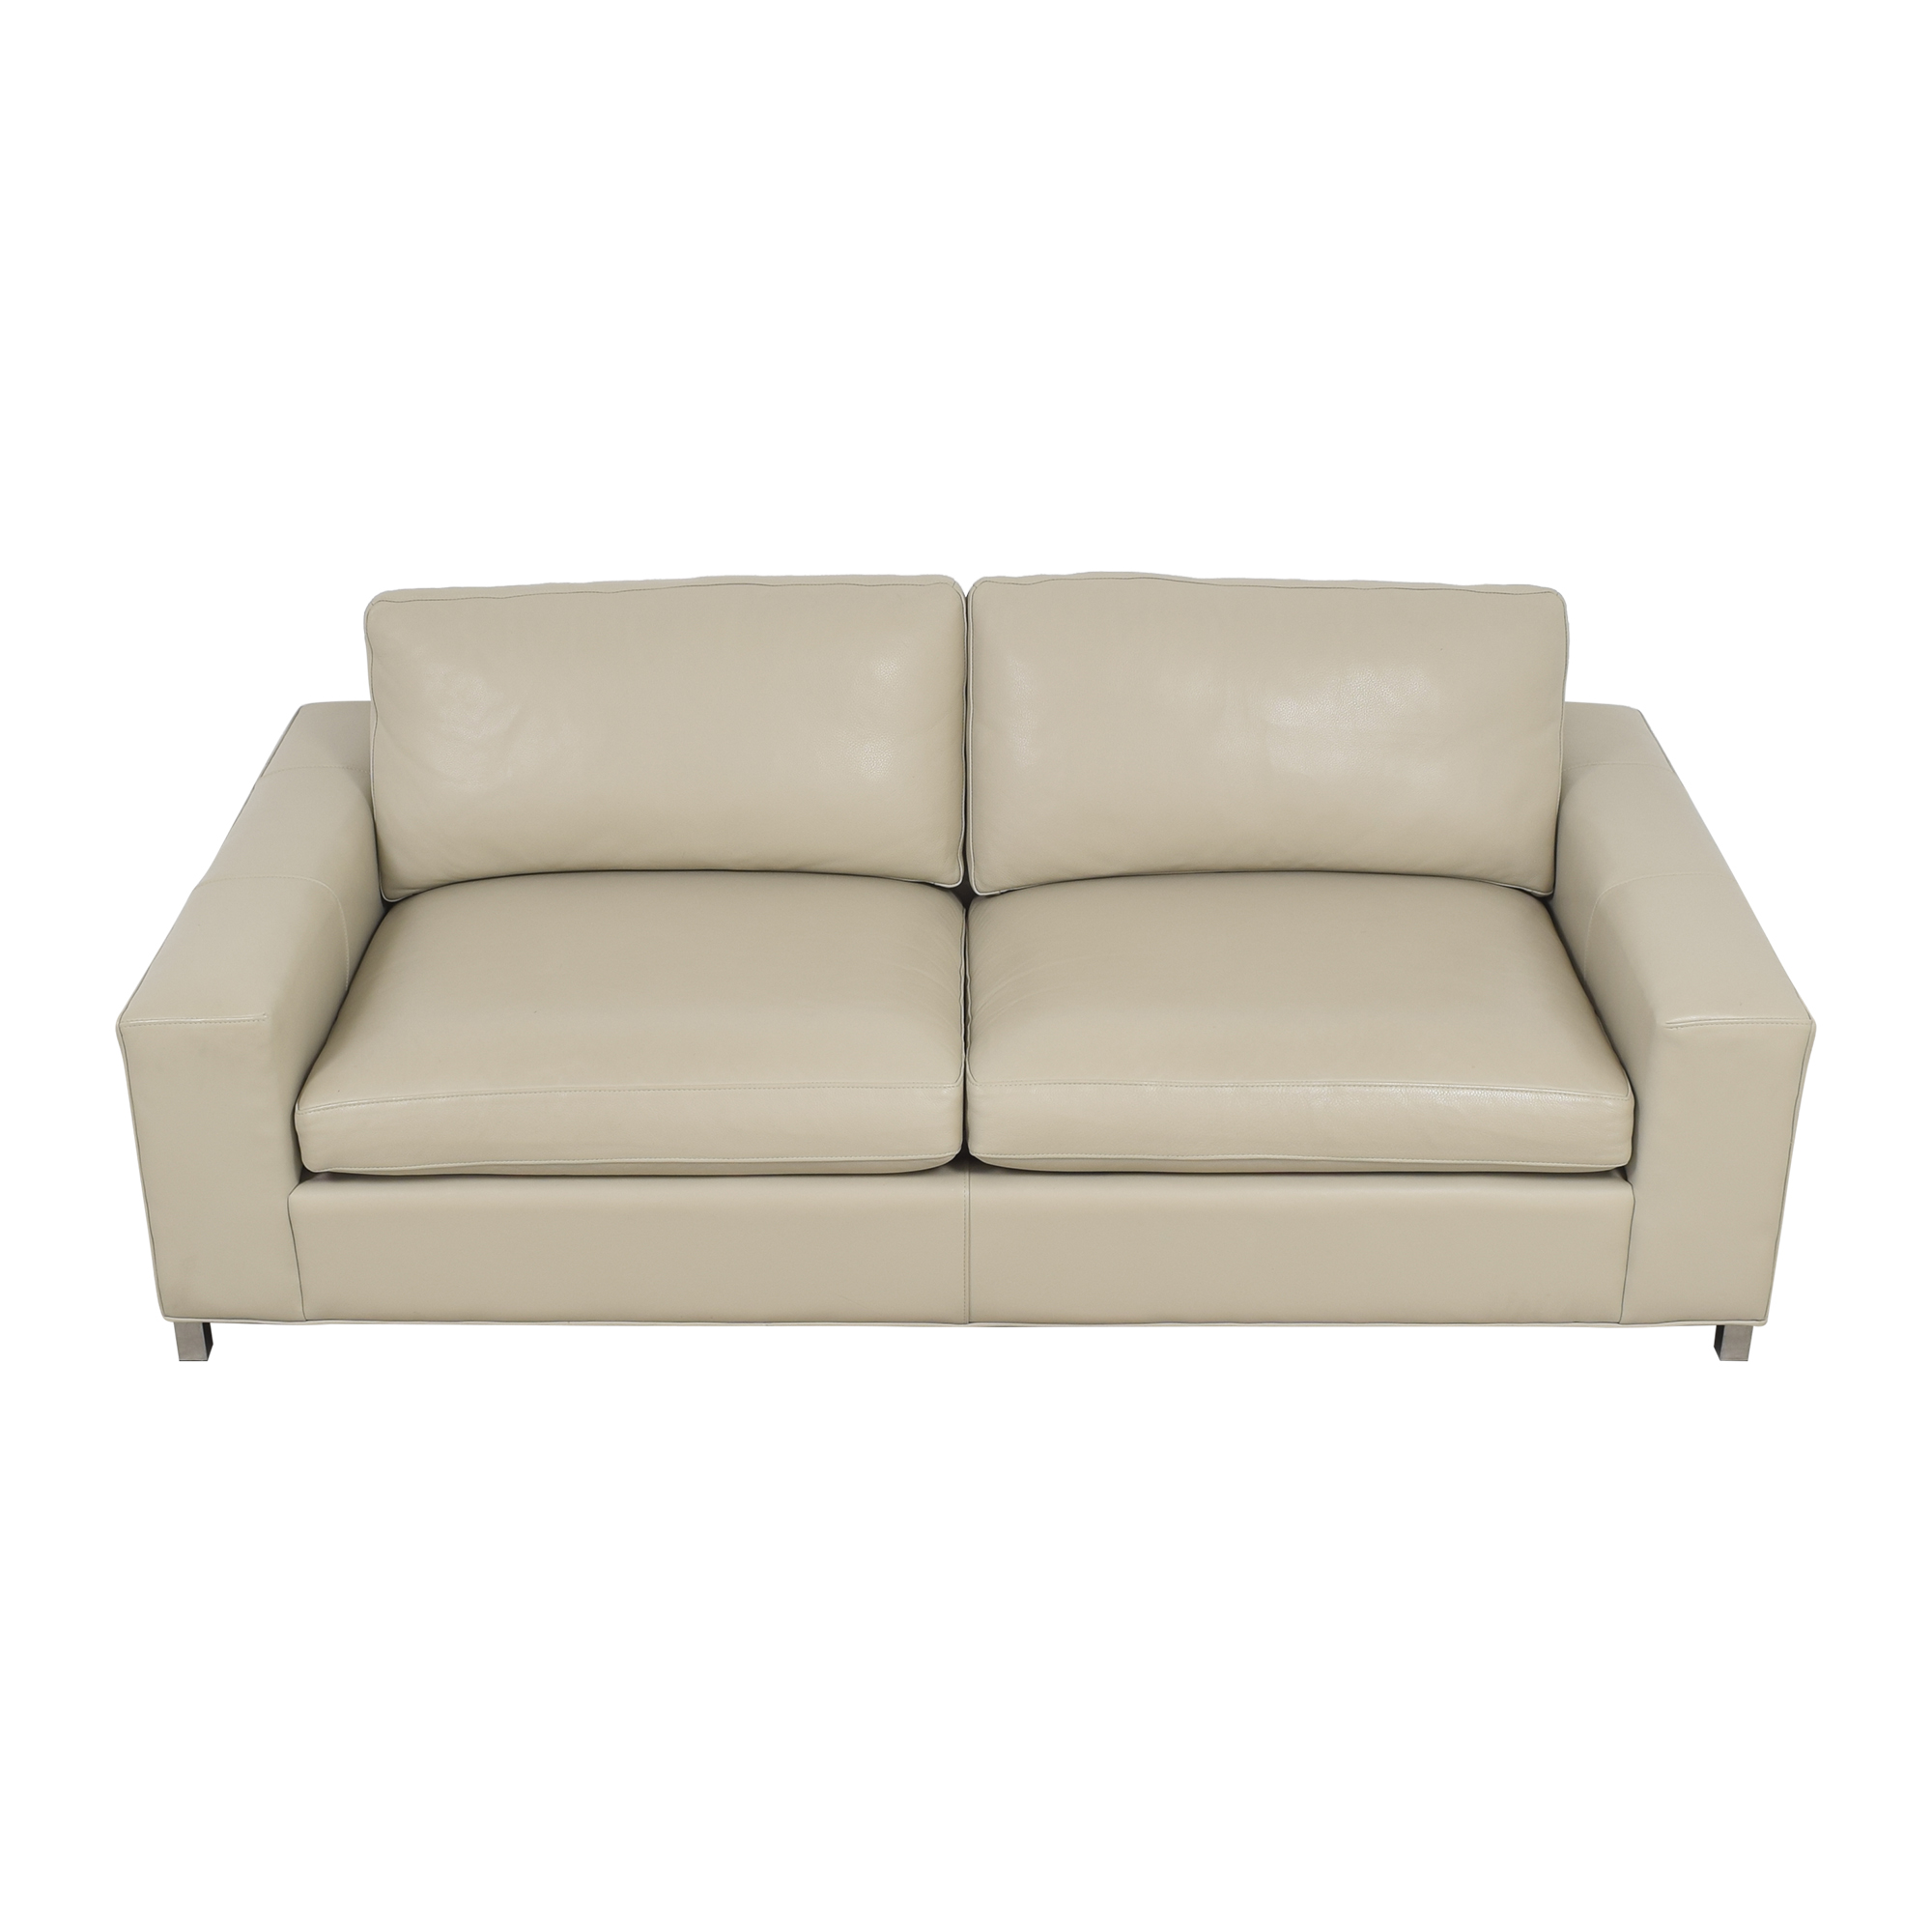 Room & Board Klein Sofa sale